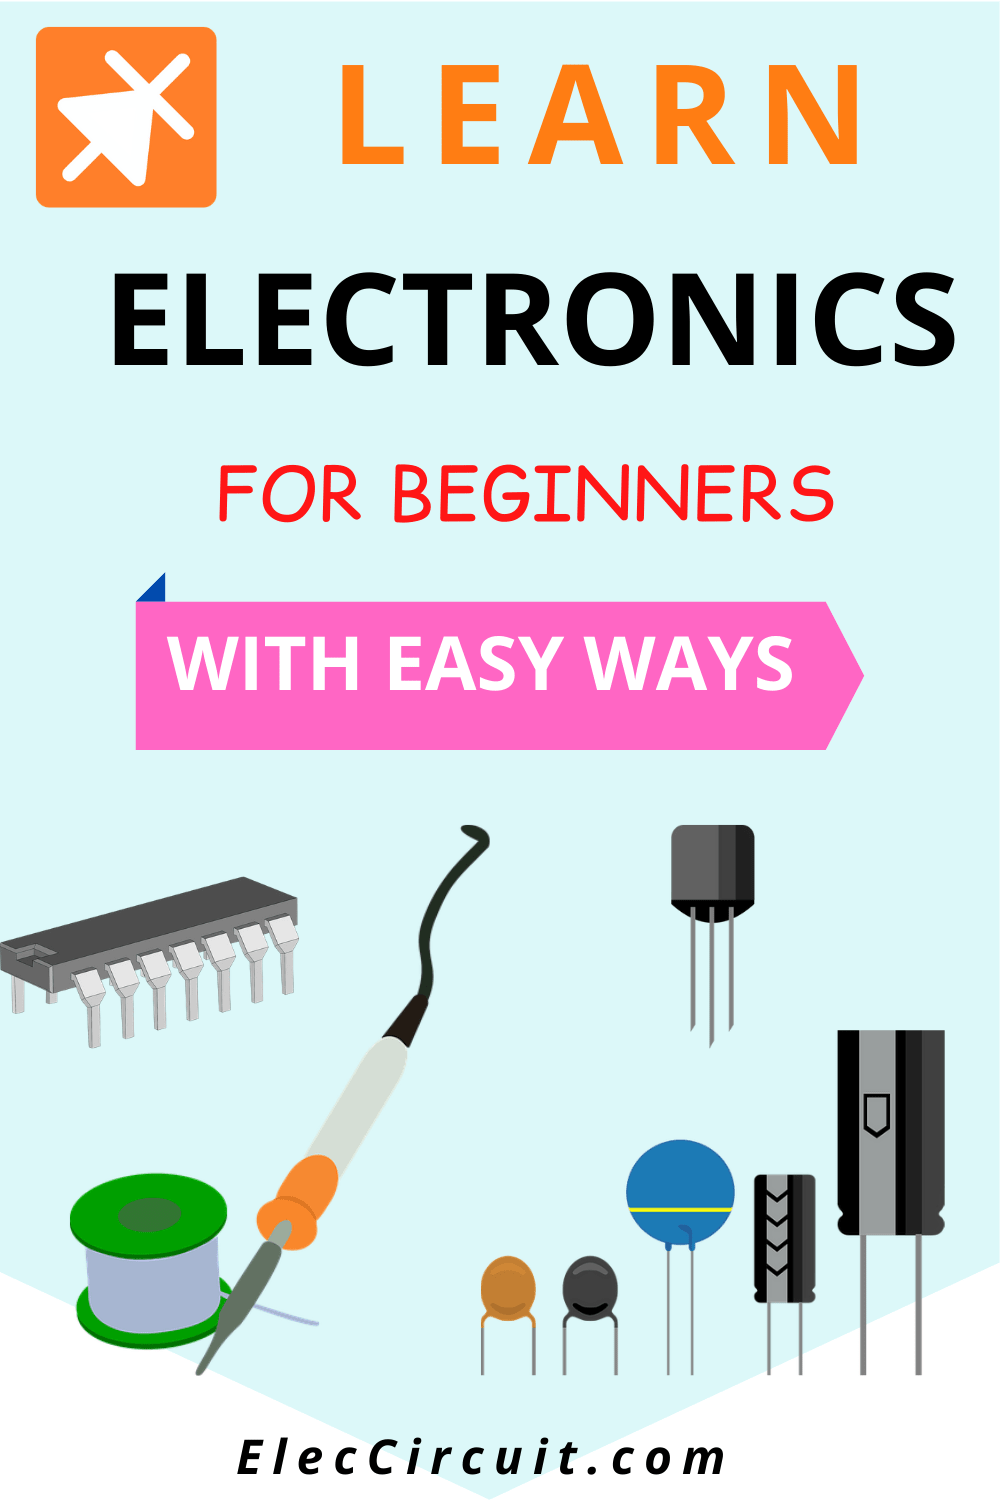 Learn electronics for beginners with easy ways